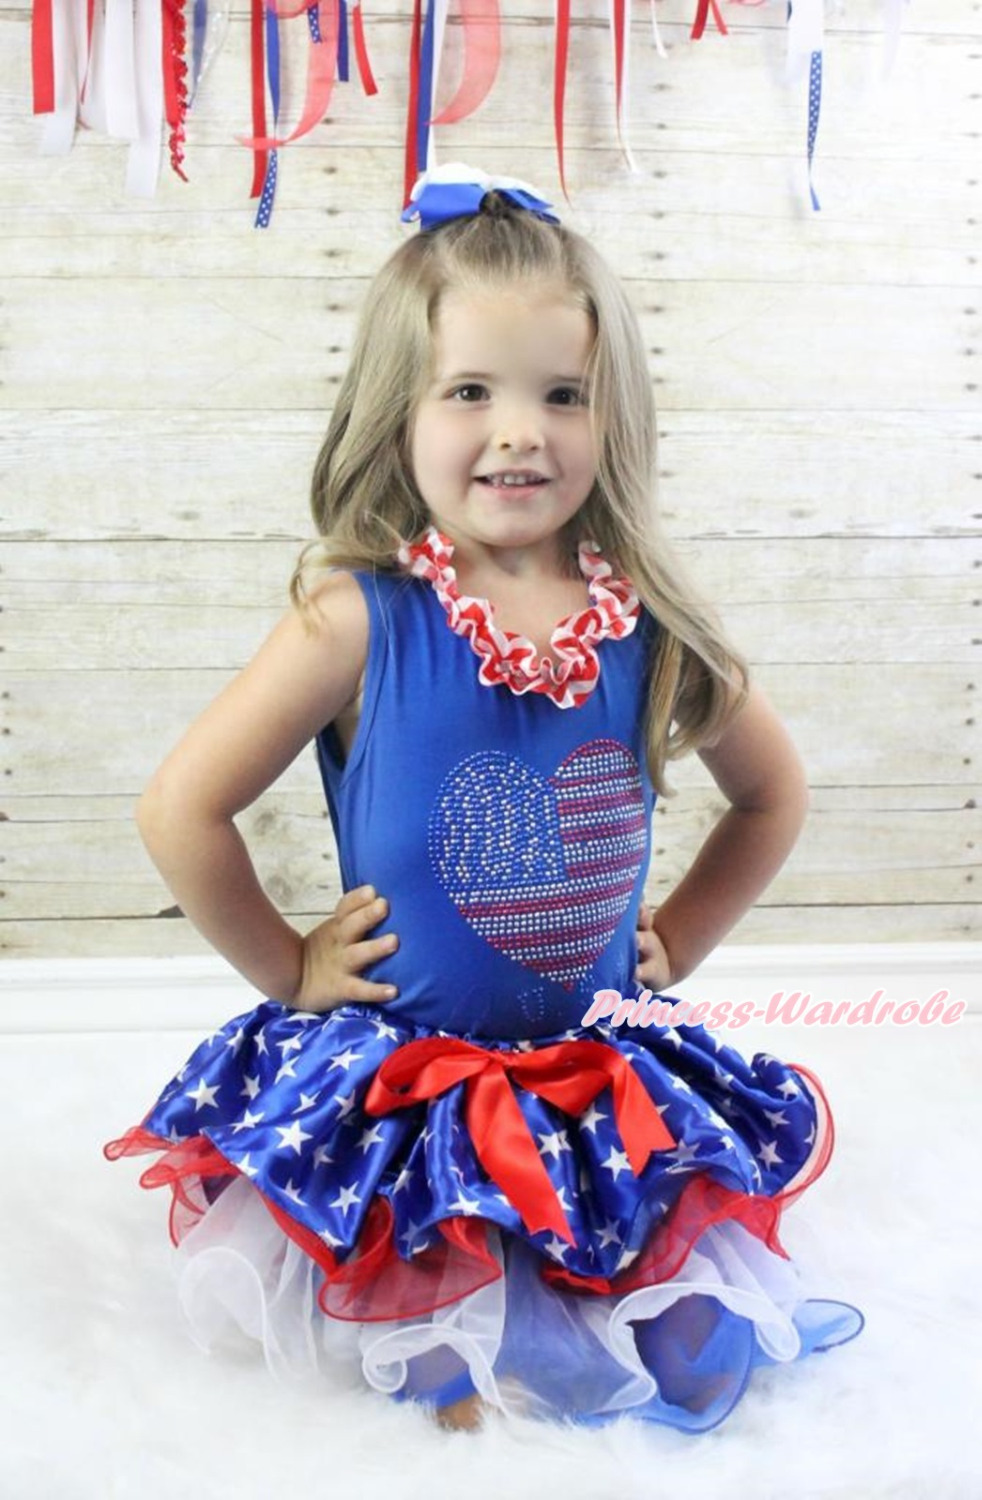 4th July Rhinestone USA Heart Girl Blue Top Patriotic Star Petal Skirt NB-8Y MAMH245 4th july america usa heart girls royal blue top bling sequins baby skirt 3 12m